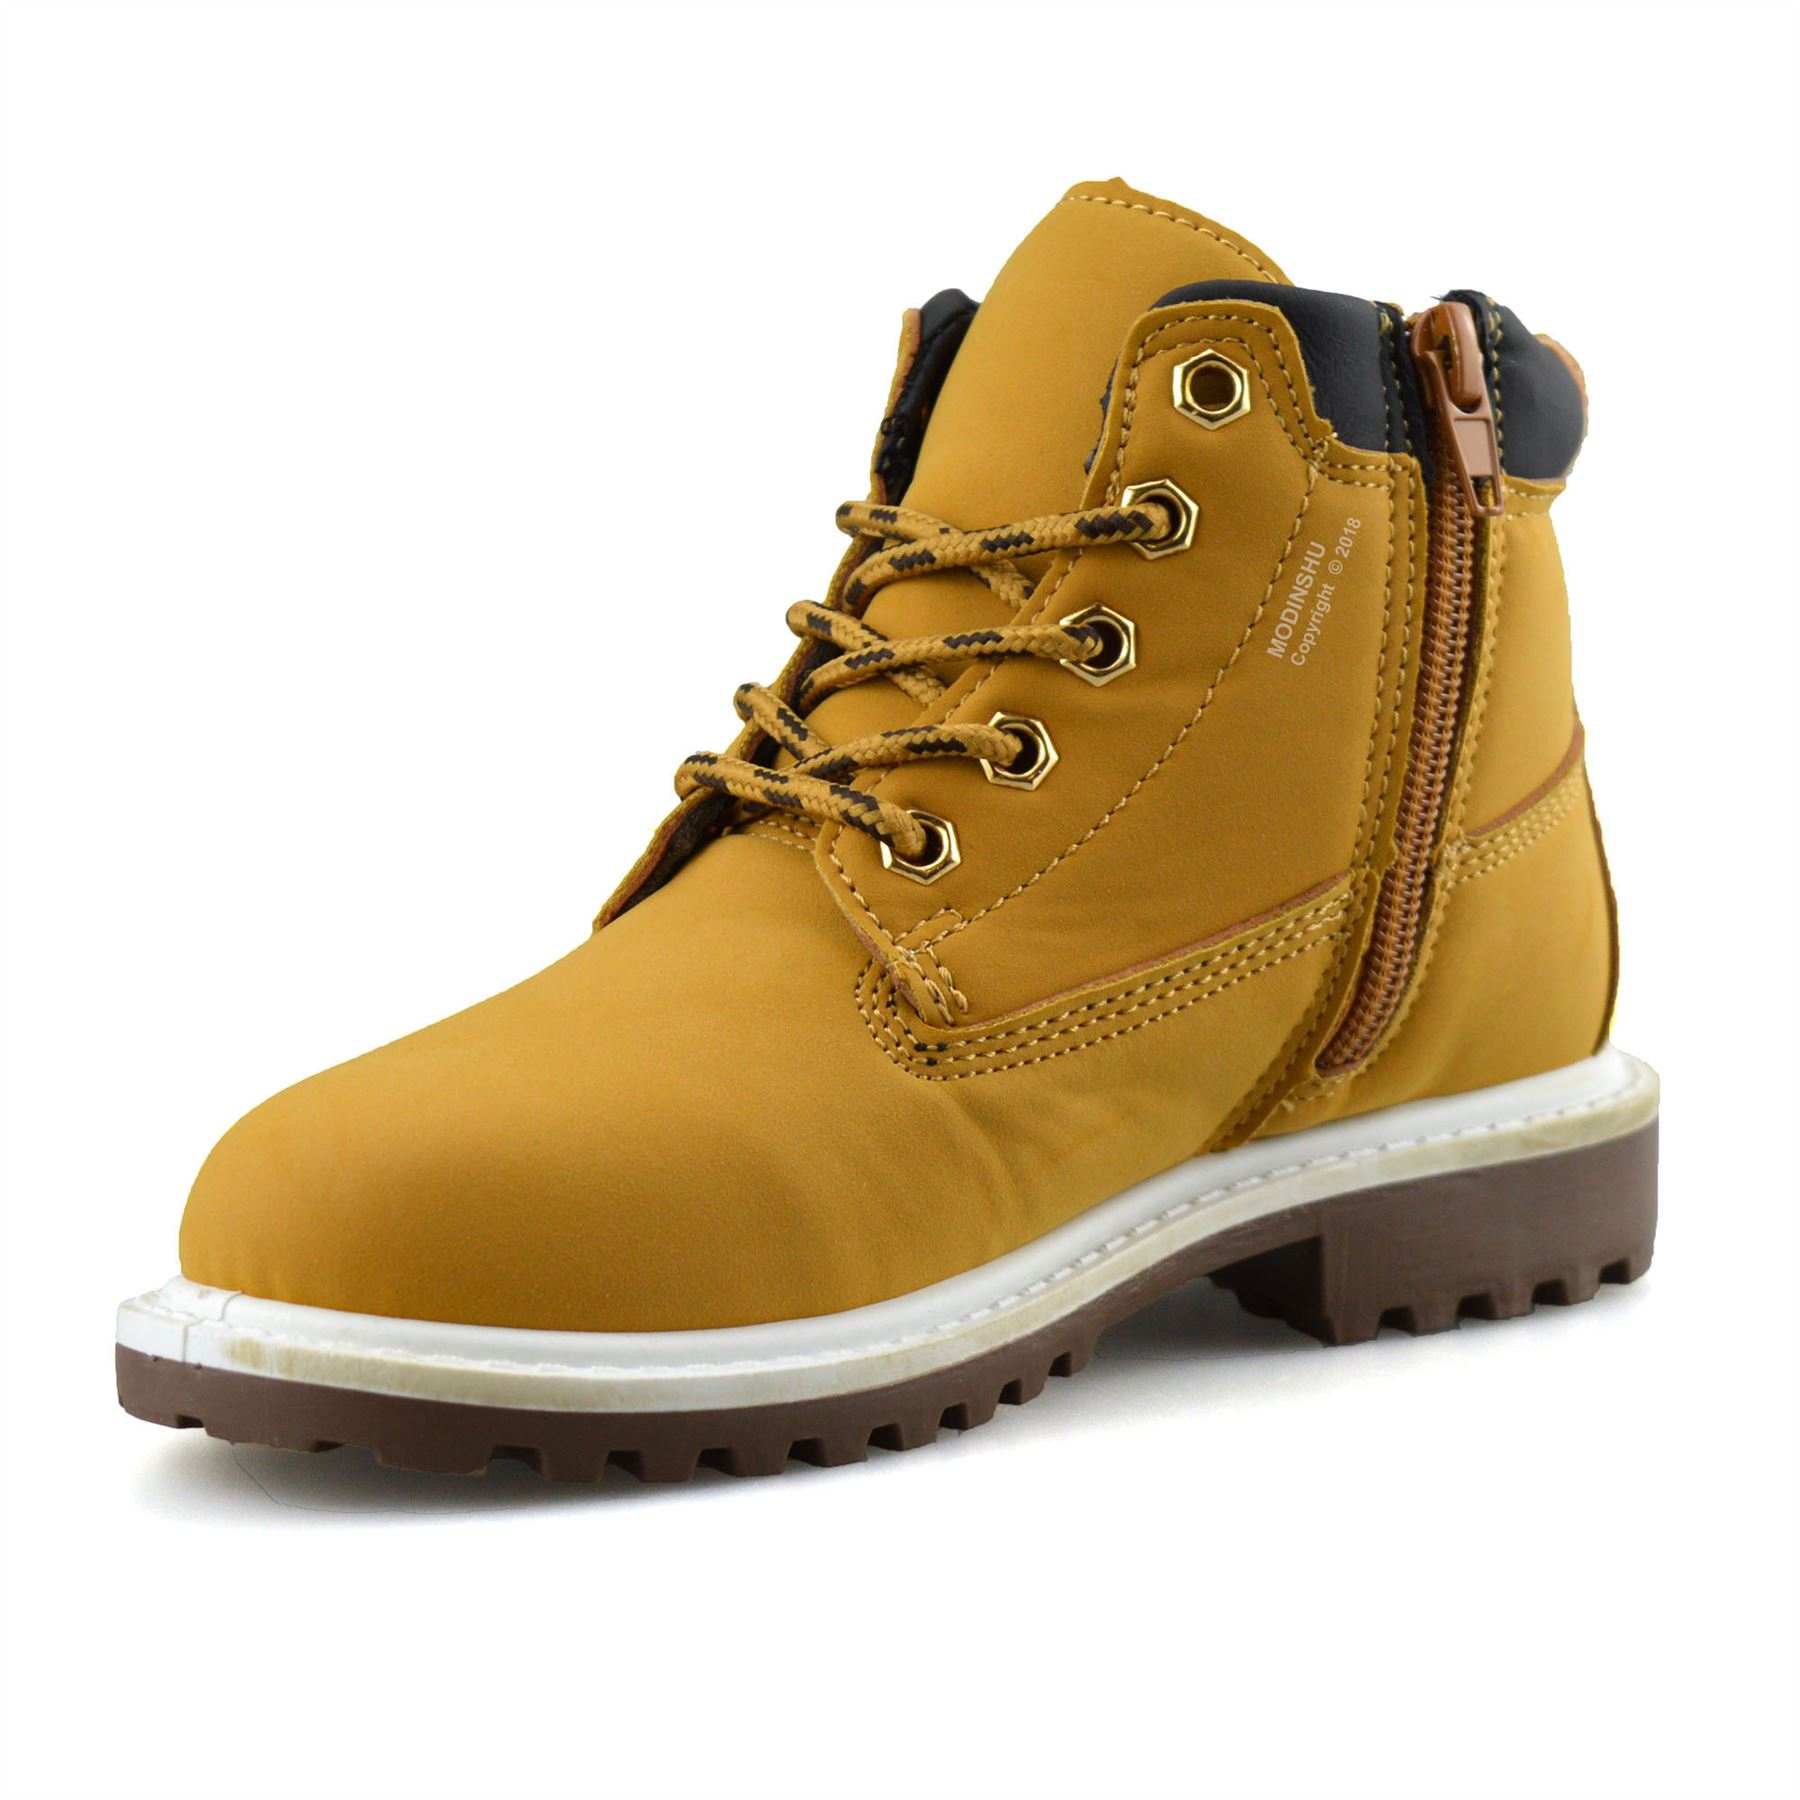 Boys-Kids-New-Casual-Zip-Lace-Up-Winter-Walking-Ankle-Boots-Trainers-Shoes-Size thumbnail 21